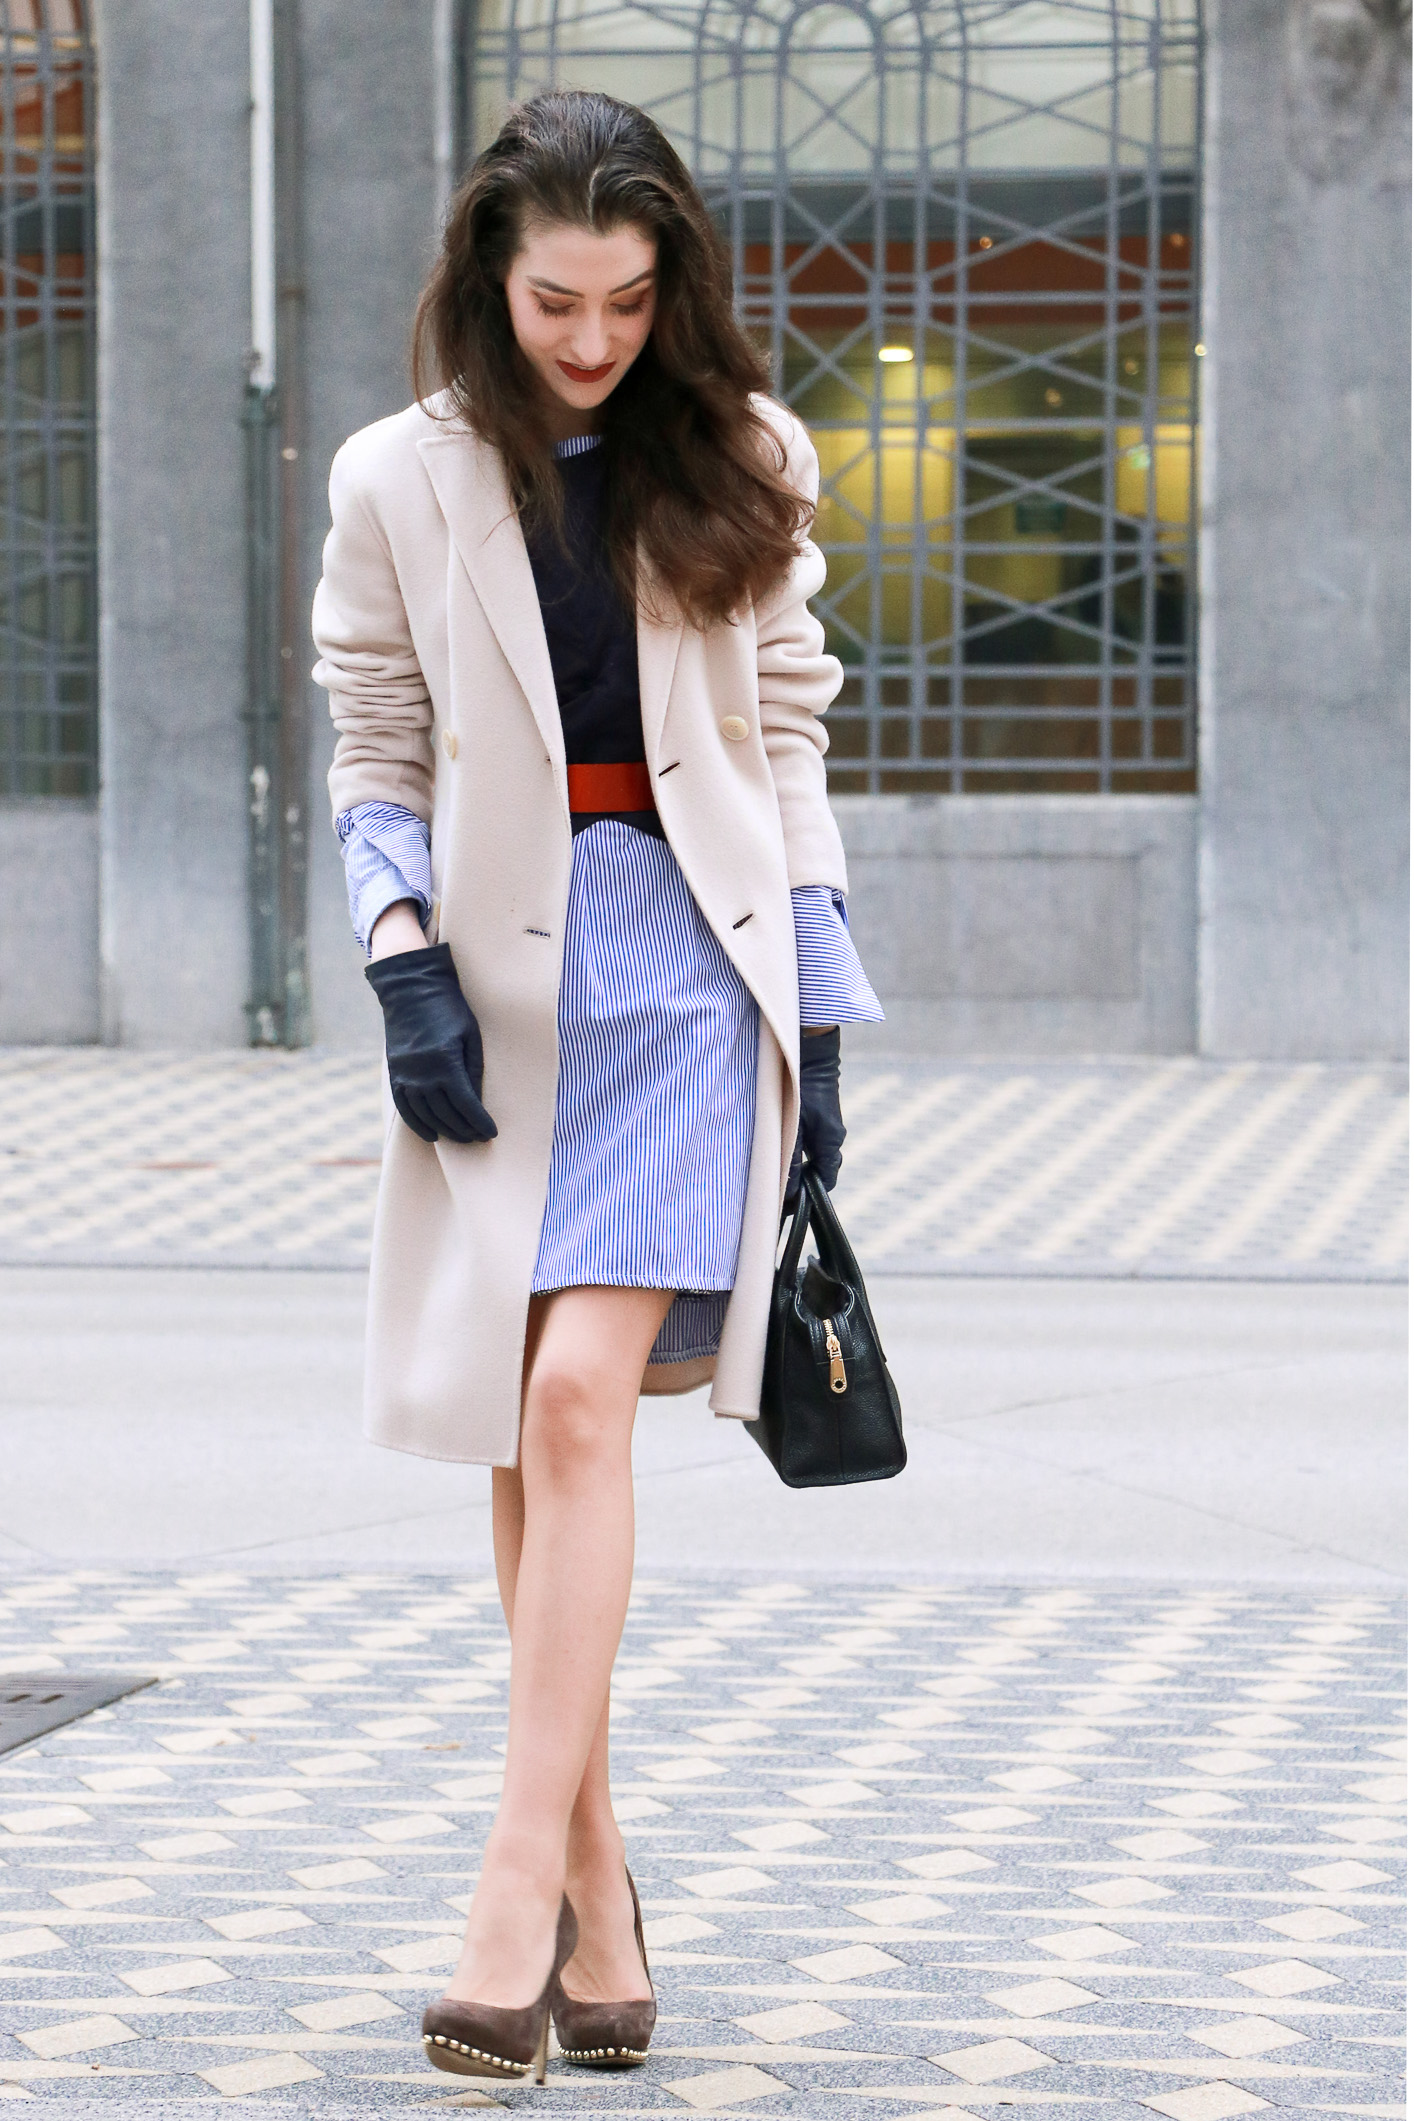 Fashion Blogger Veronika Lipar of Brunette from Wall Street sharing how to style your boyfriend's shirt